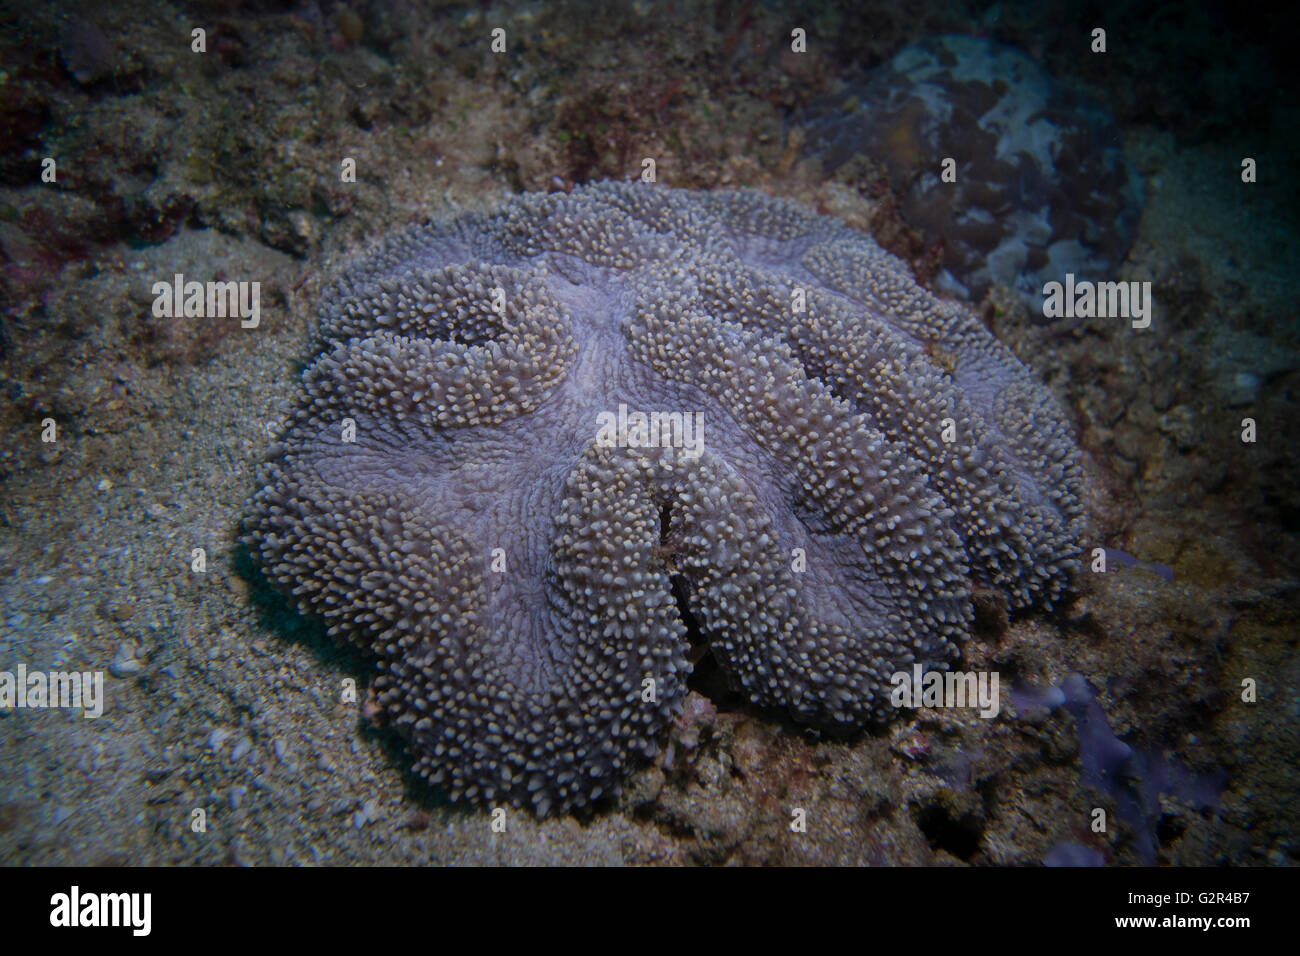 Stony coral, Lobophyllia sp.,  taken while SCUBA diving in the coral reefs of Brunei Darussalam, Coral Triangle. - Stock Image